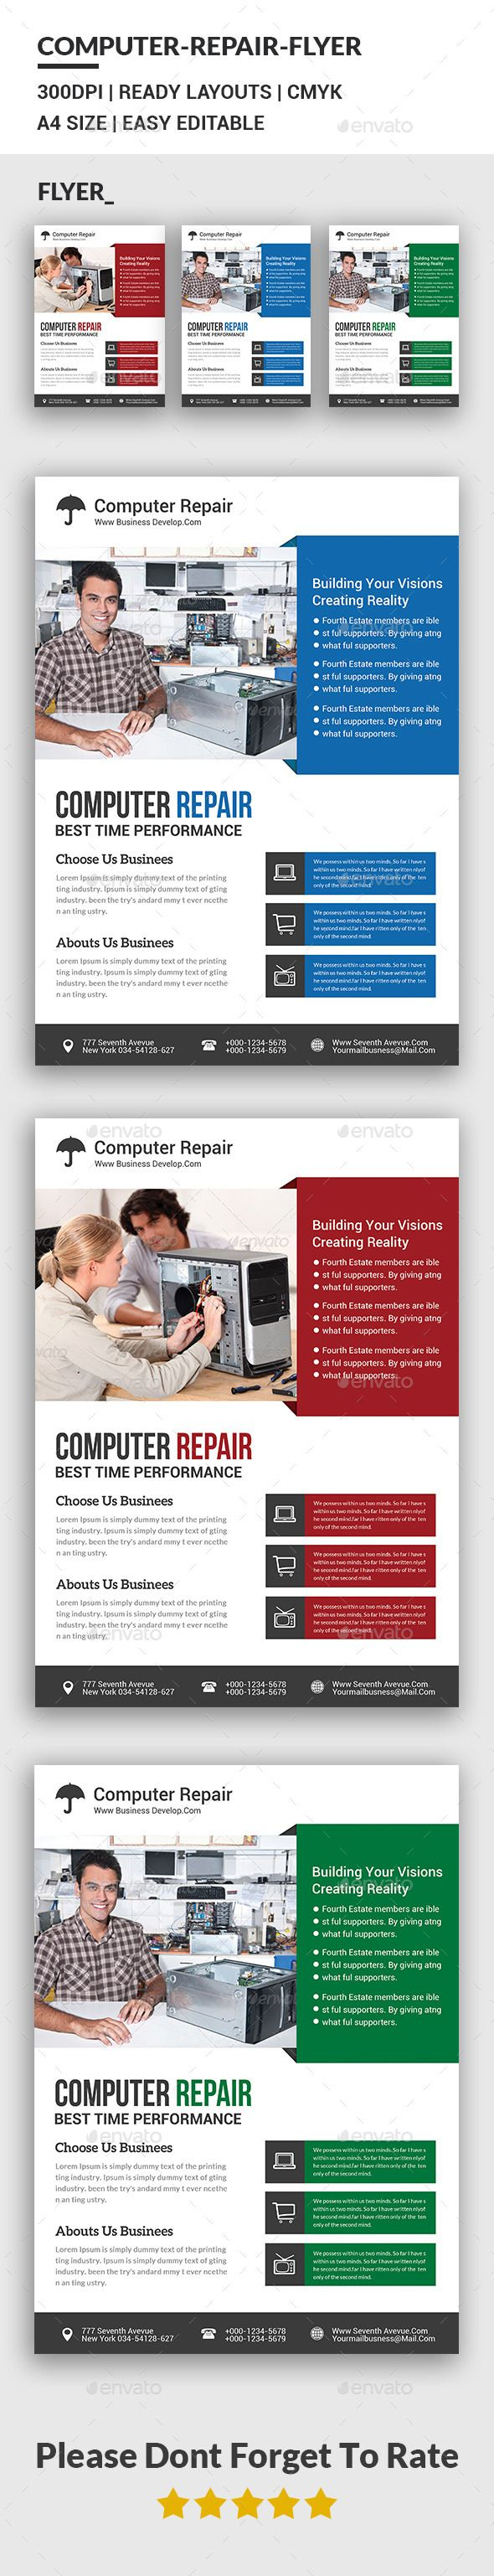 Computer Repair Flyer Design Tempalte Download: http://graphicriver.net/item/computer-repair-flyer-template/12505810?ref=ksioks